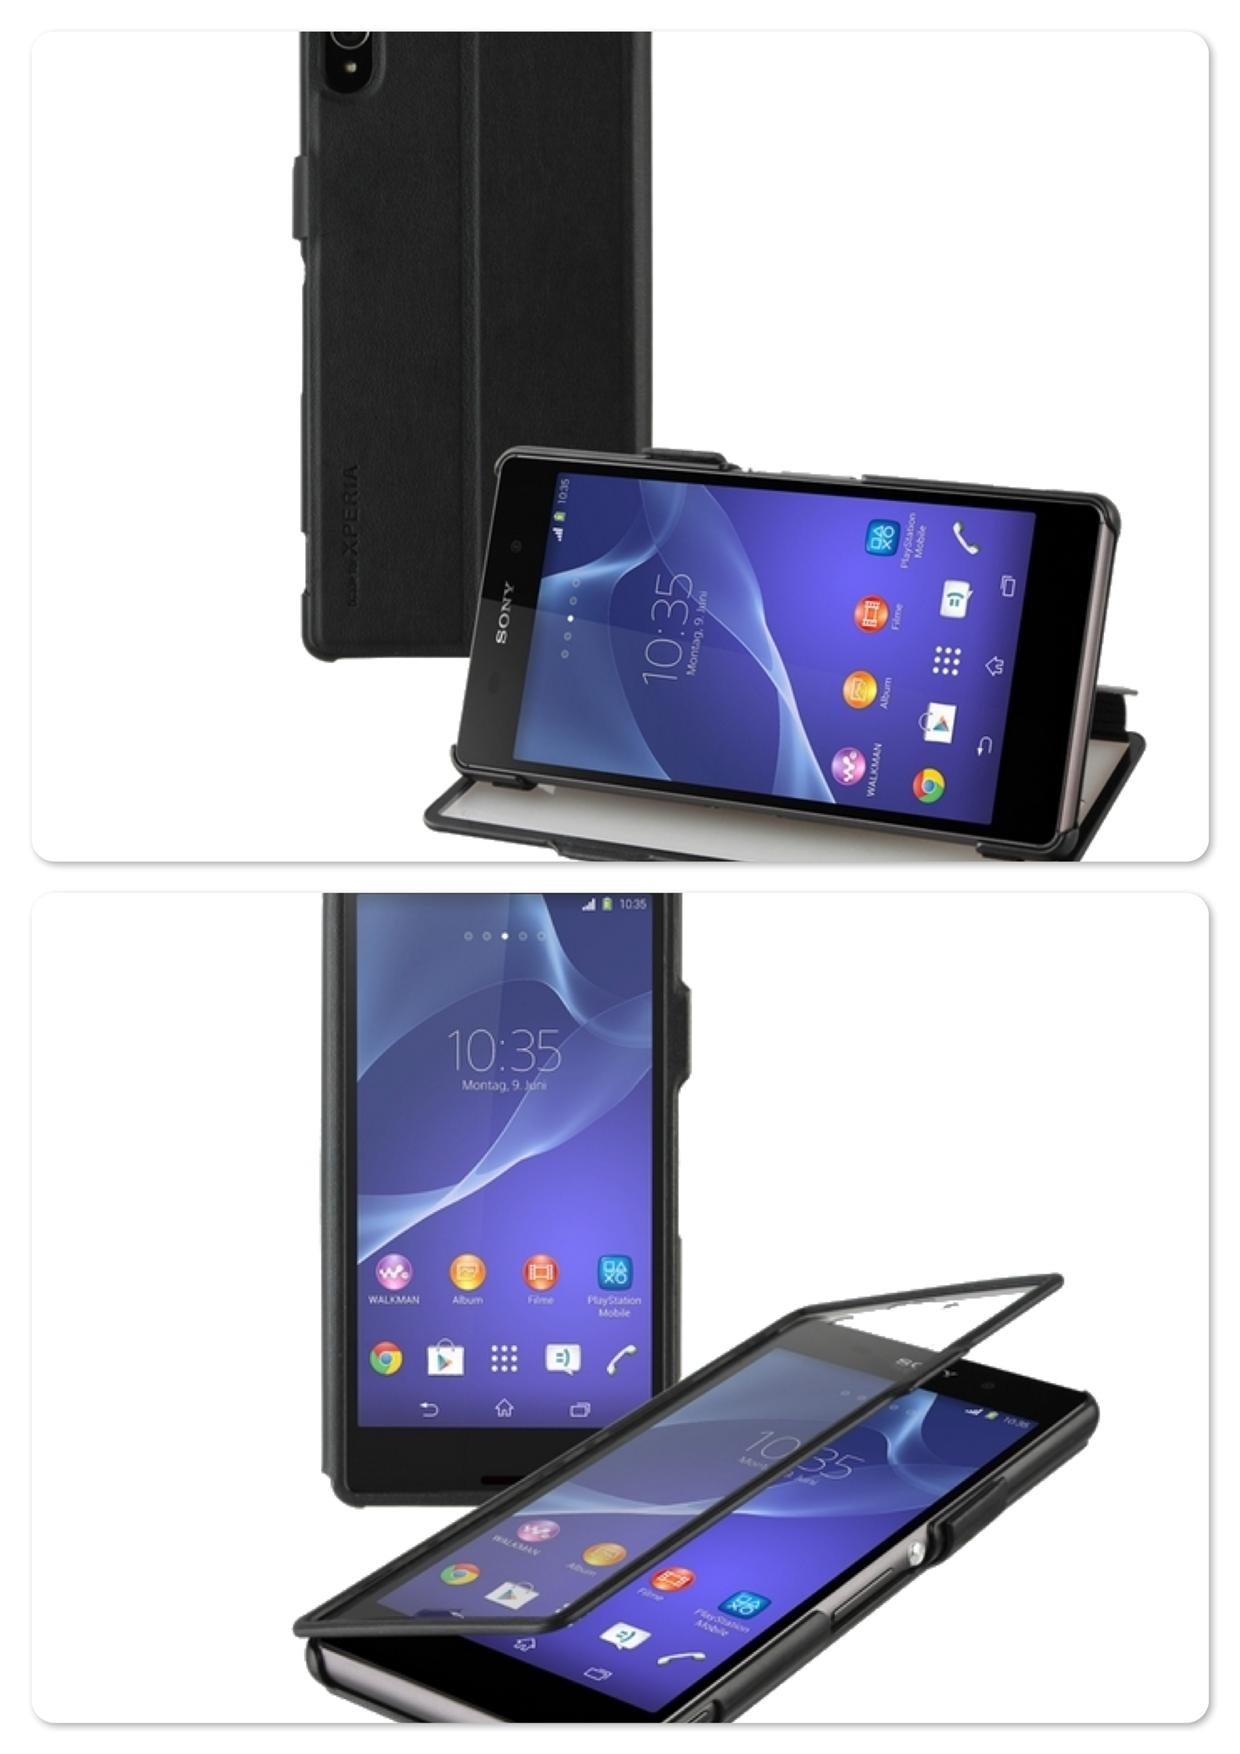 bdotcom sony xperia z3 roxfit touch end 6 4 2017 4 25 pm. Black Bedroom Furniture Sets. Home Design Ideas